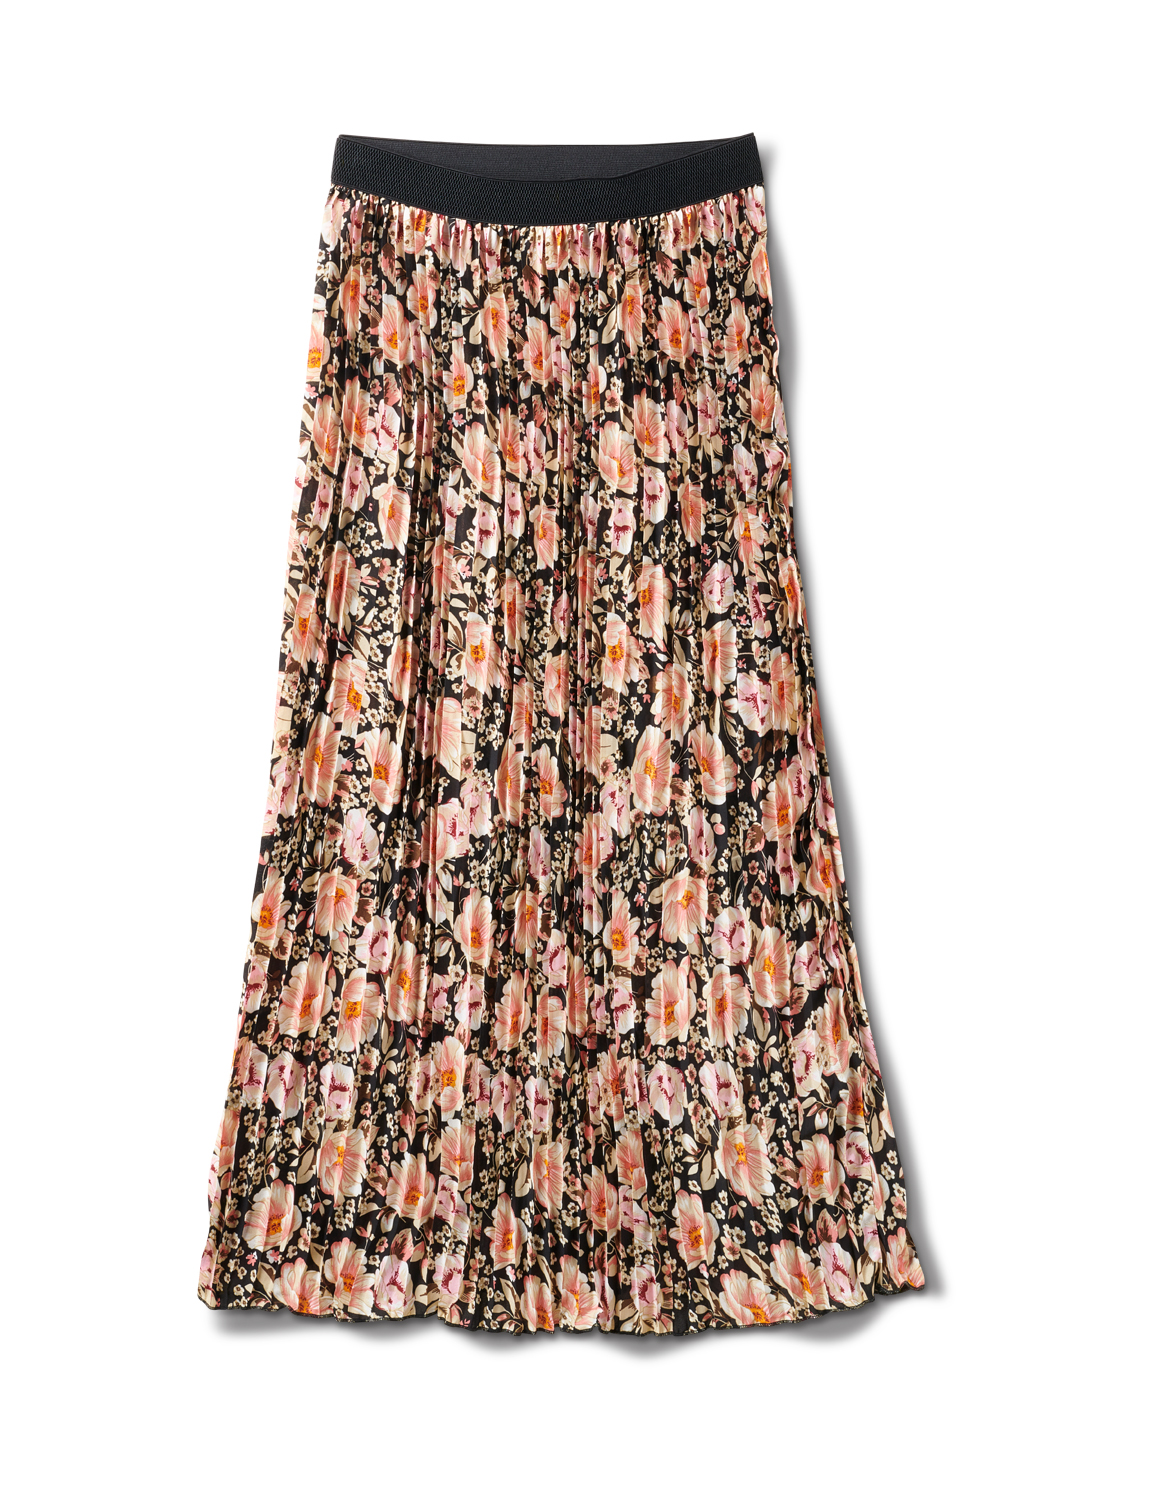 Floral Print Pleated Skirt With Contrast Elastic Waistband -Floral - Front